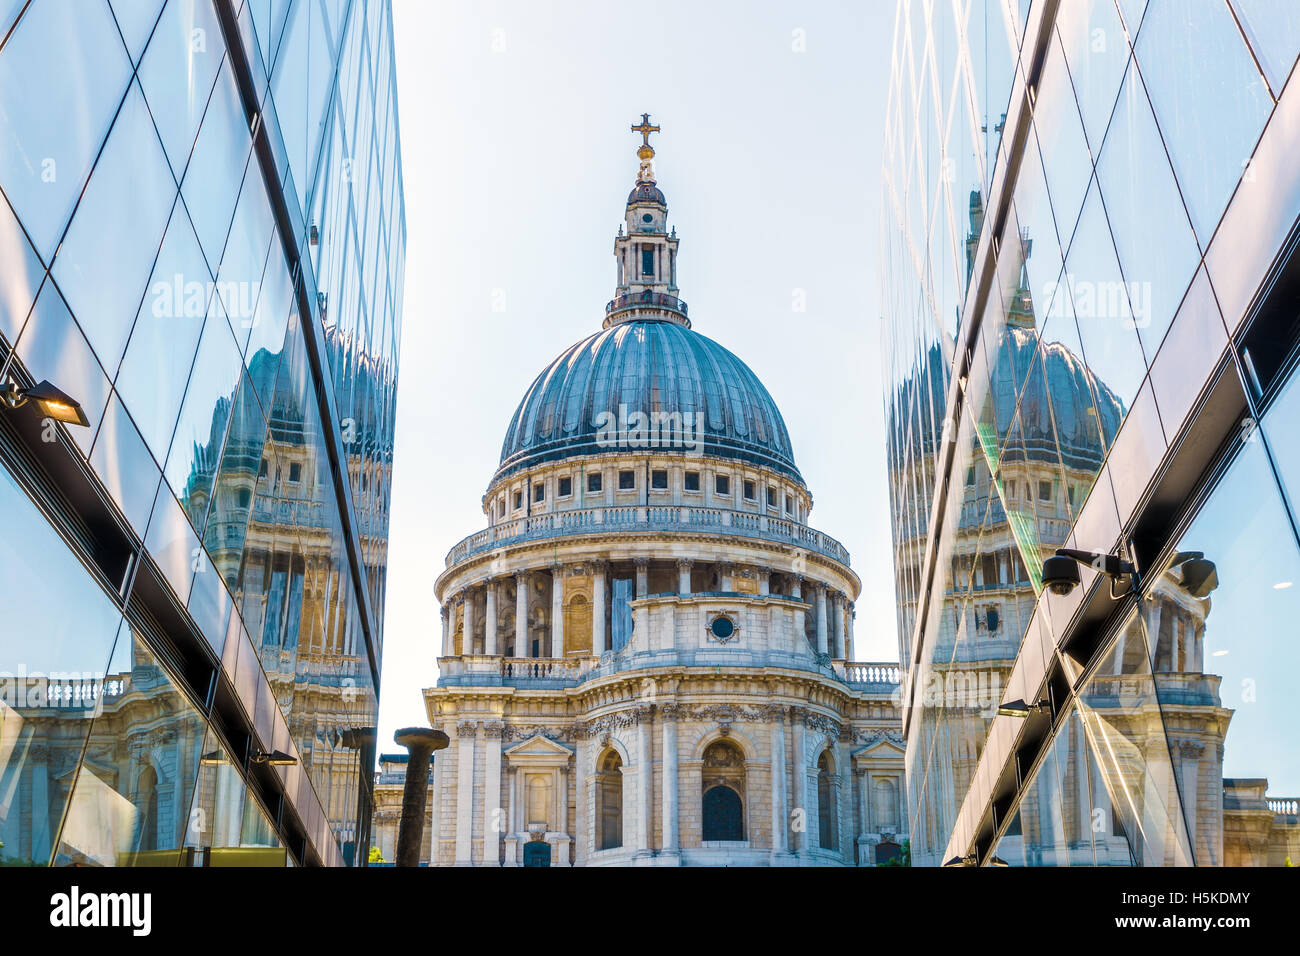 St Pauls Cathedral reflected in glass window of One New Change in London - Stock Image